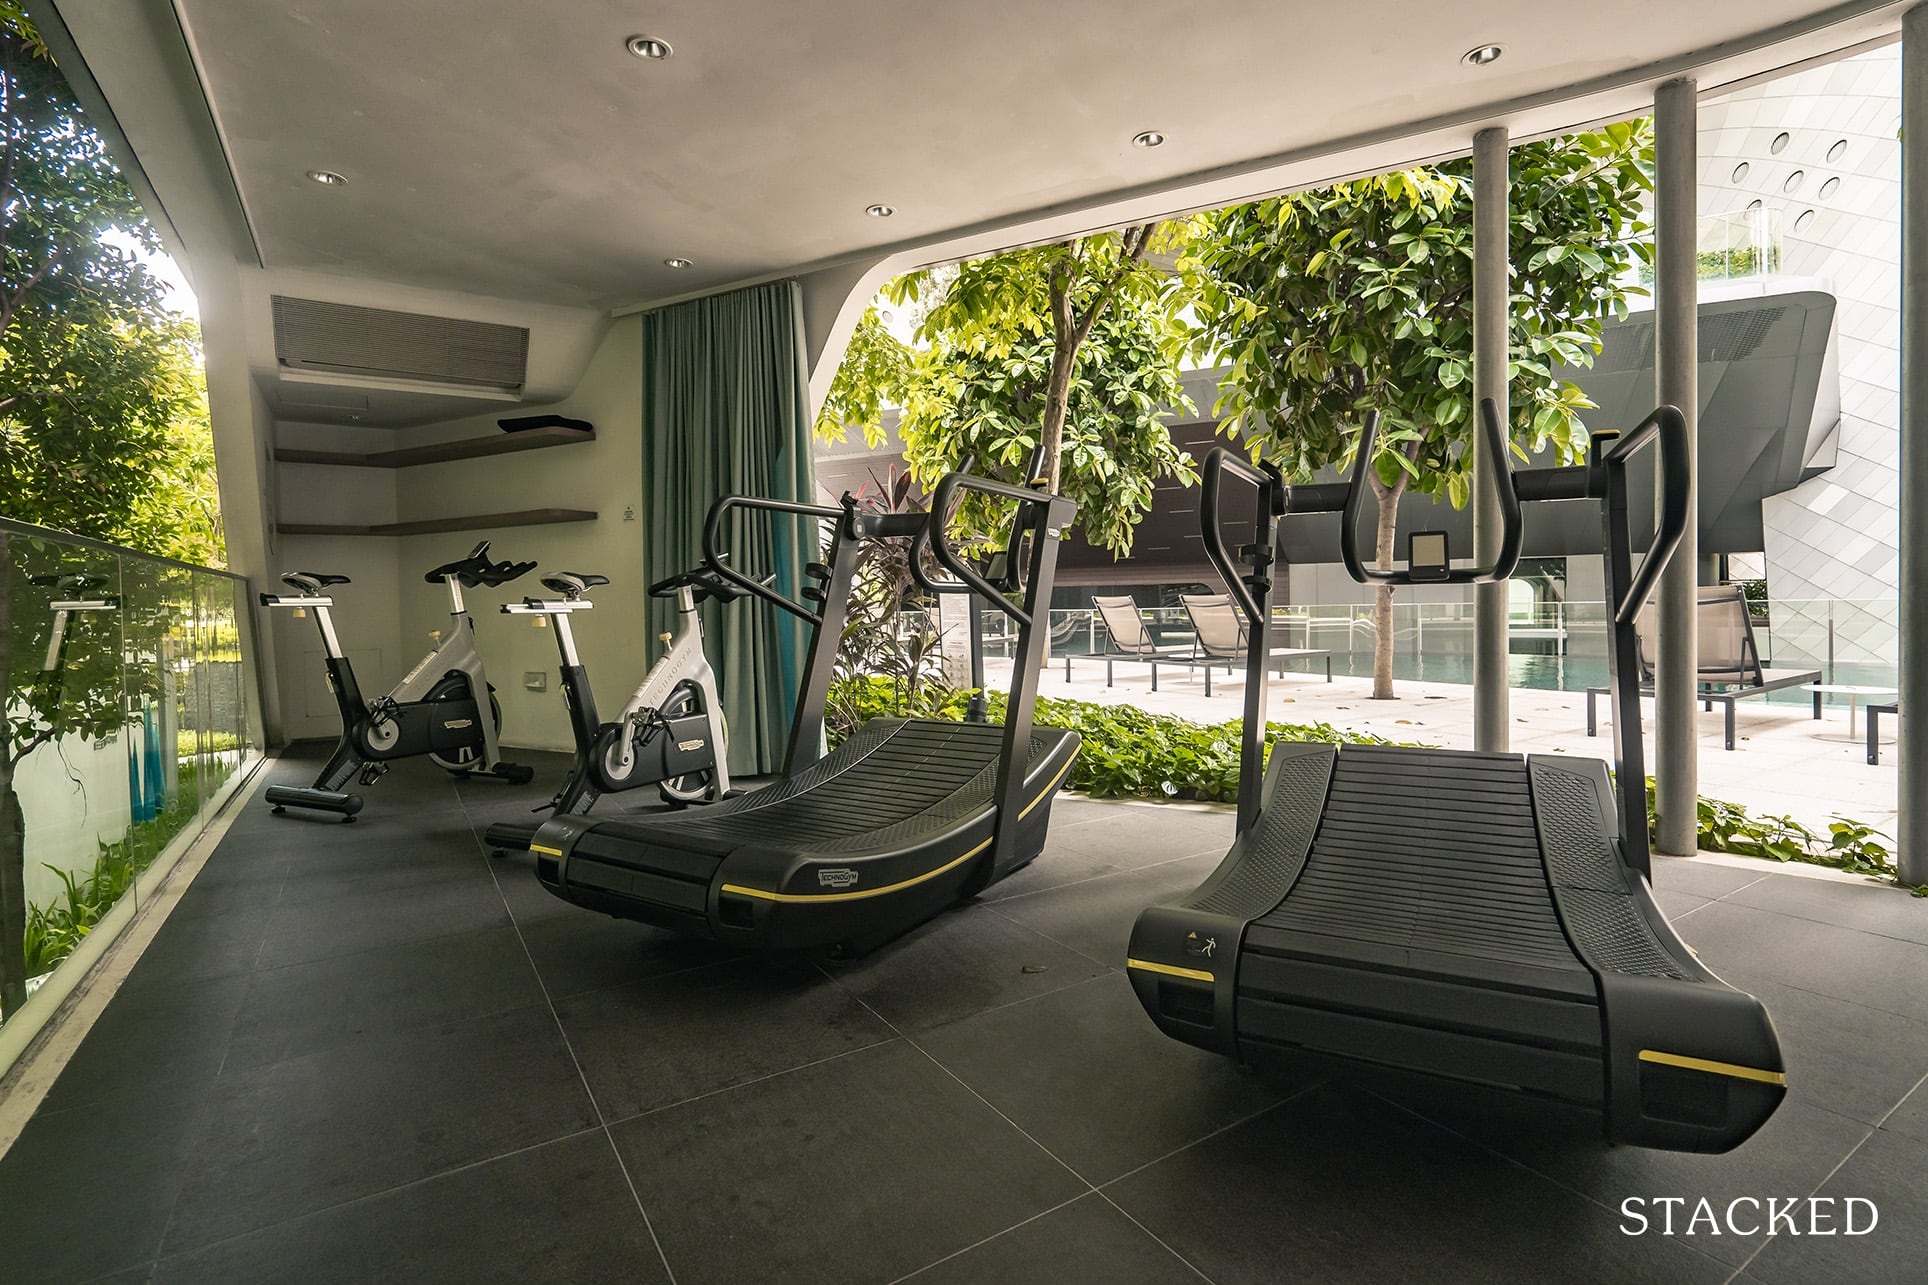 the Scotts tower fitness pod